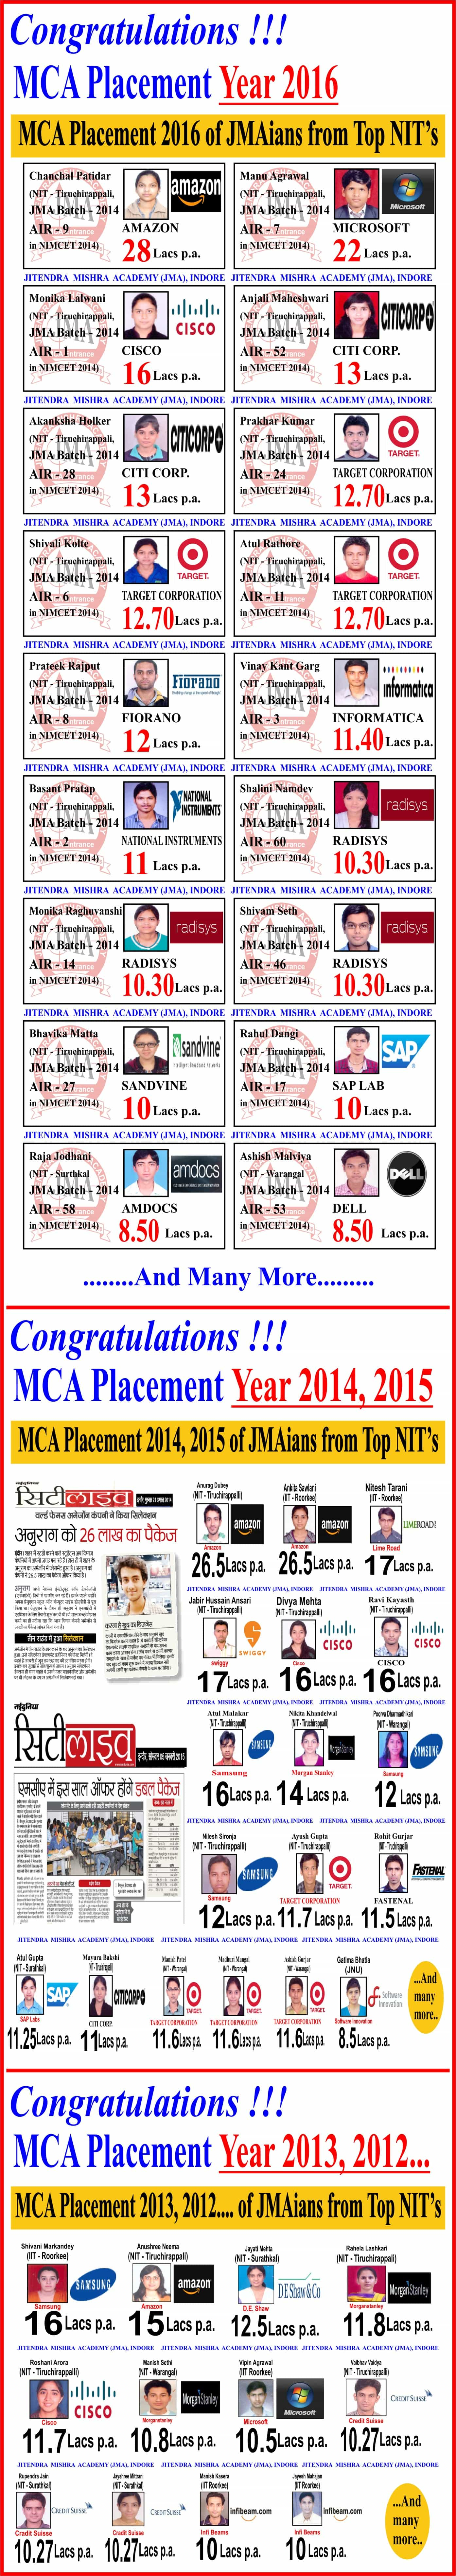 MCA PLACEMENT 2016 (for web)